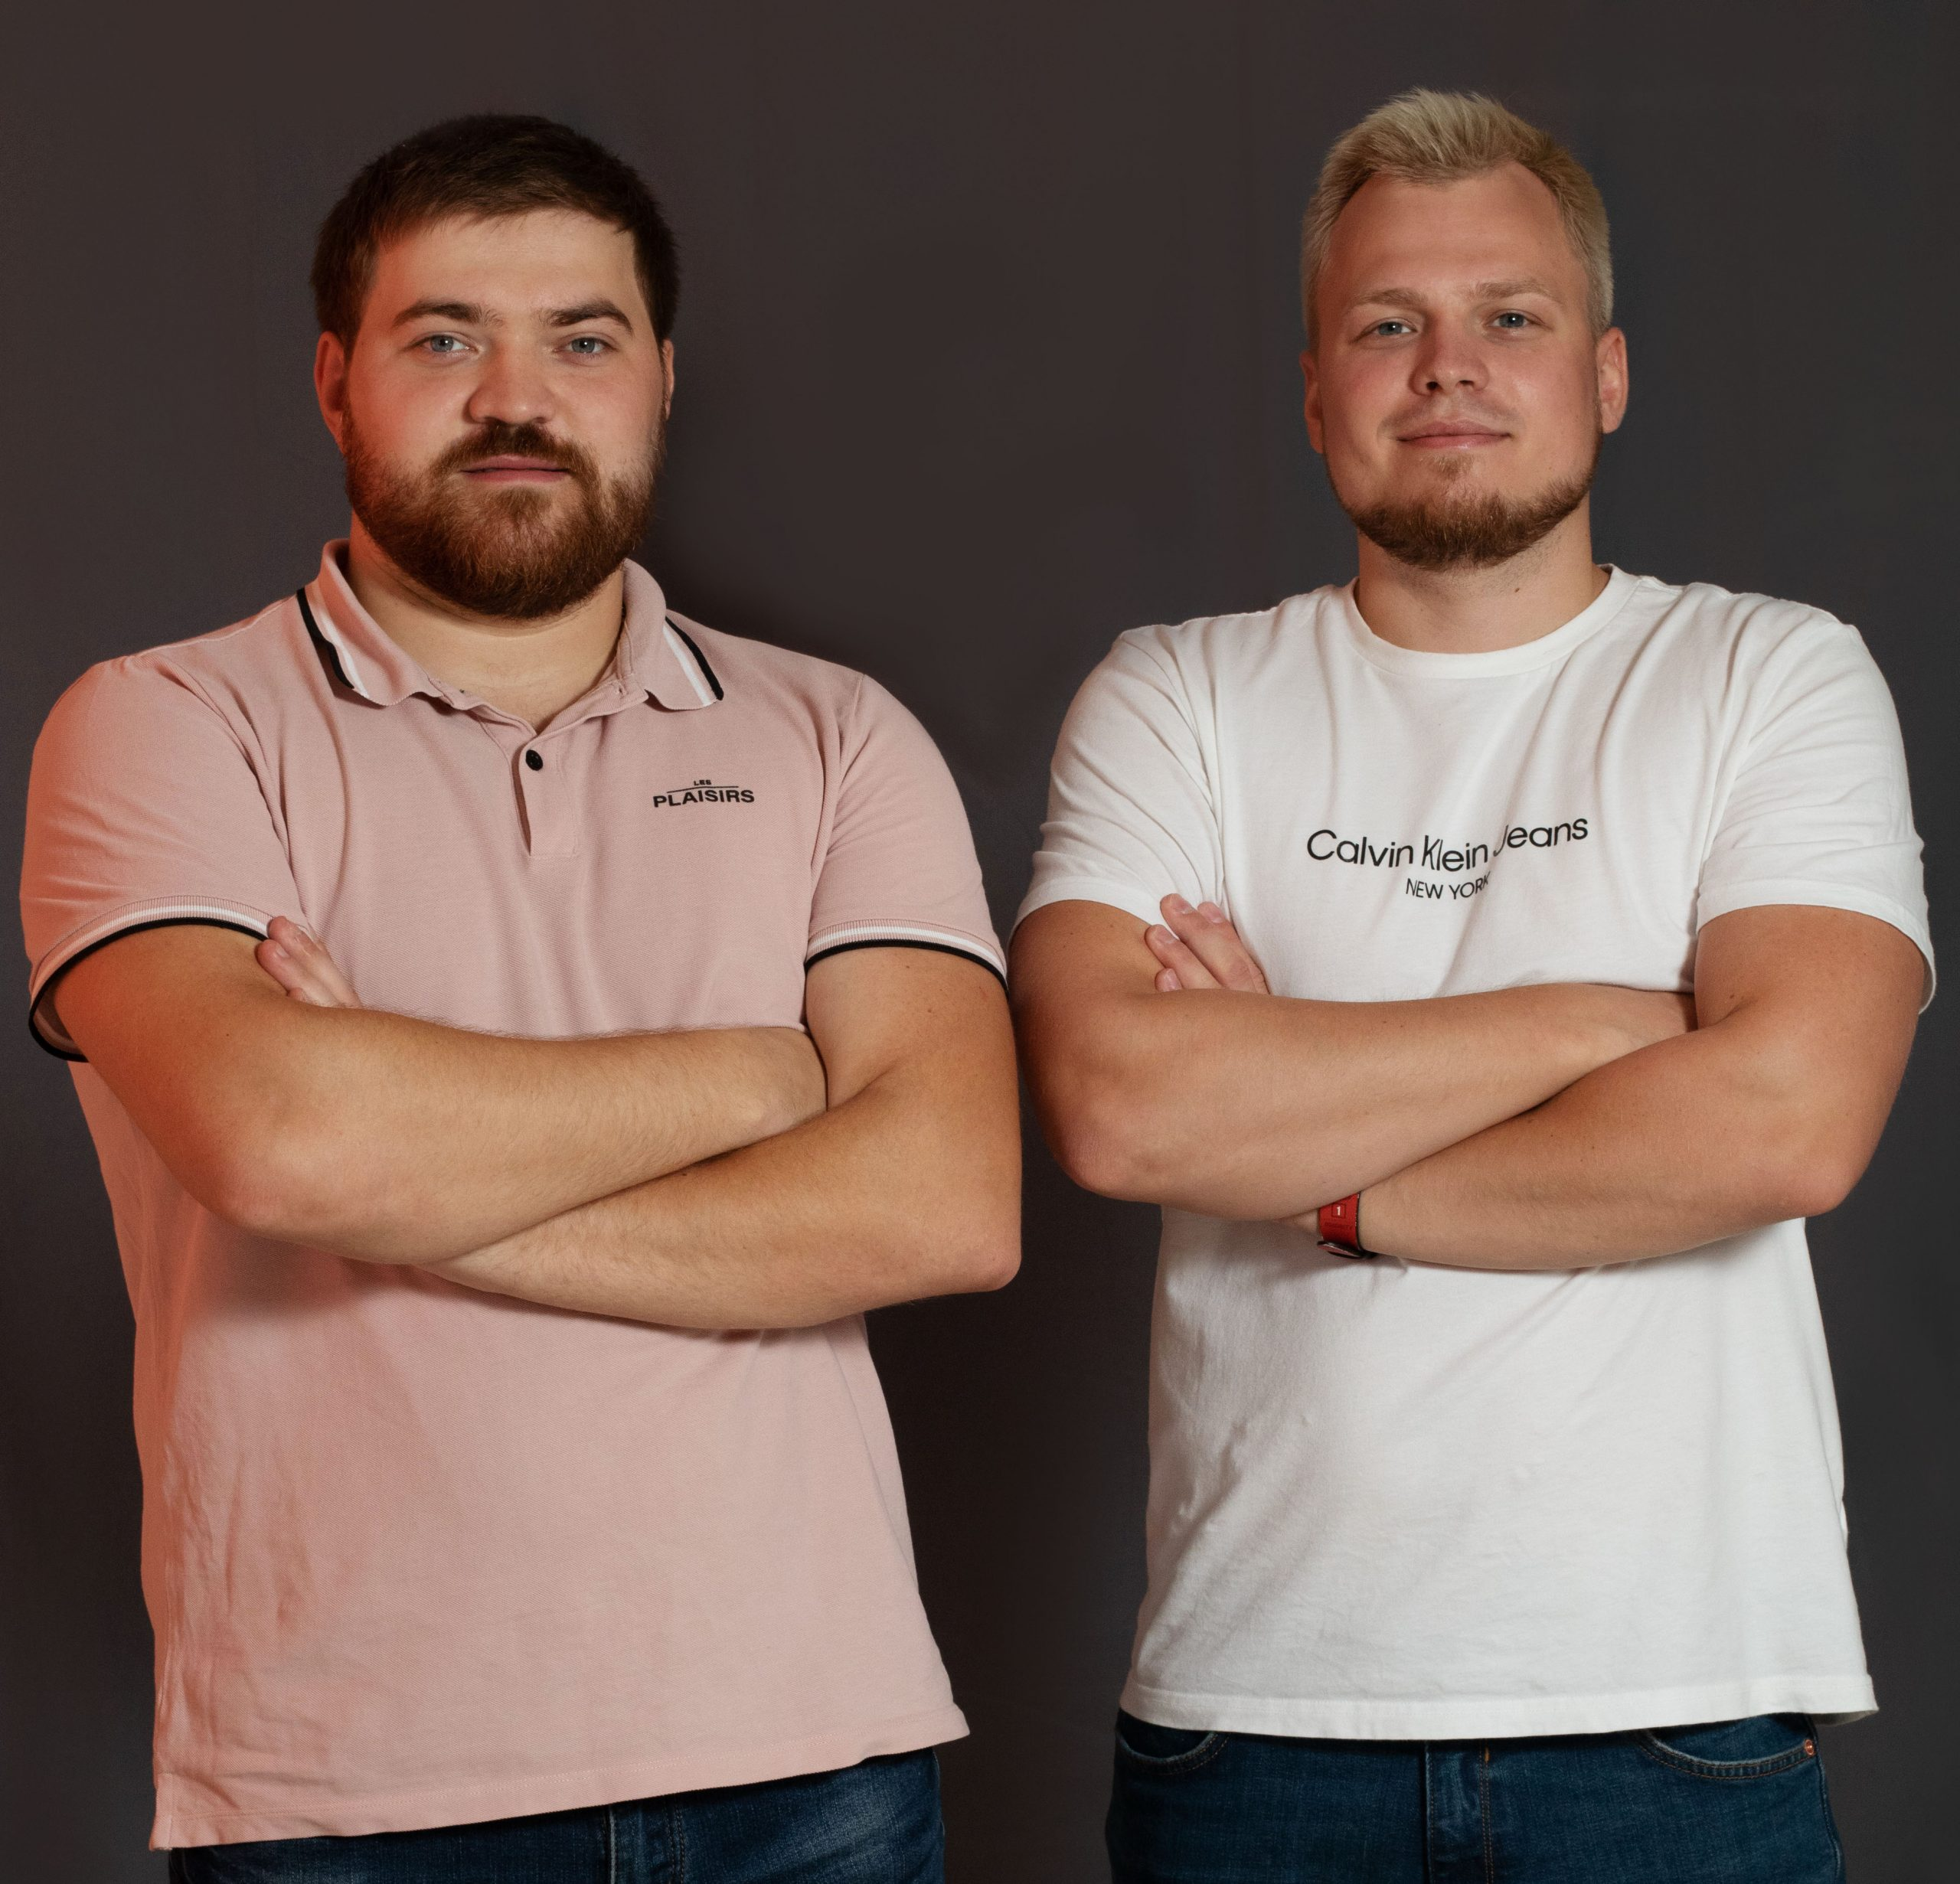 SalesAR Announced among the Most Reviewed Companies in Ukraine